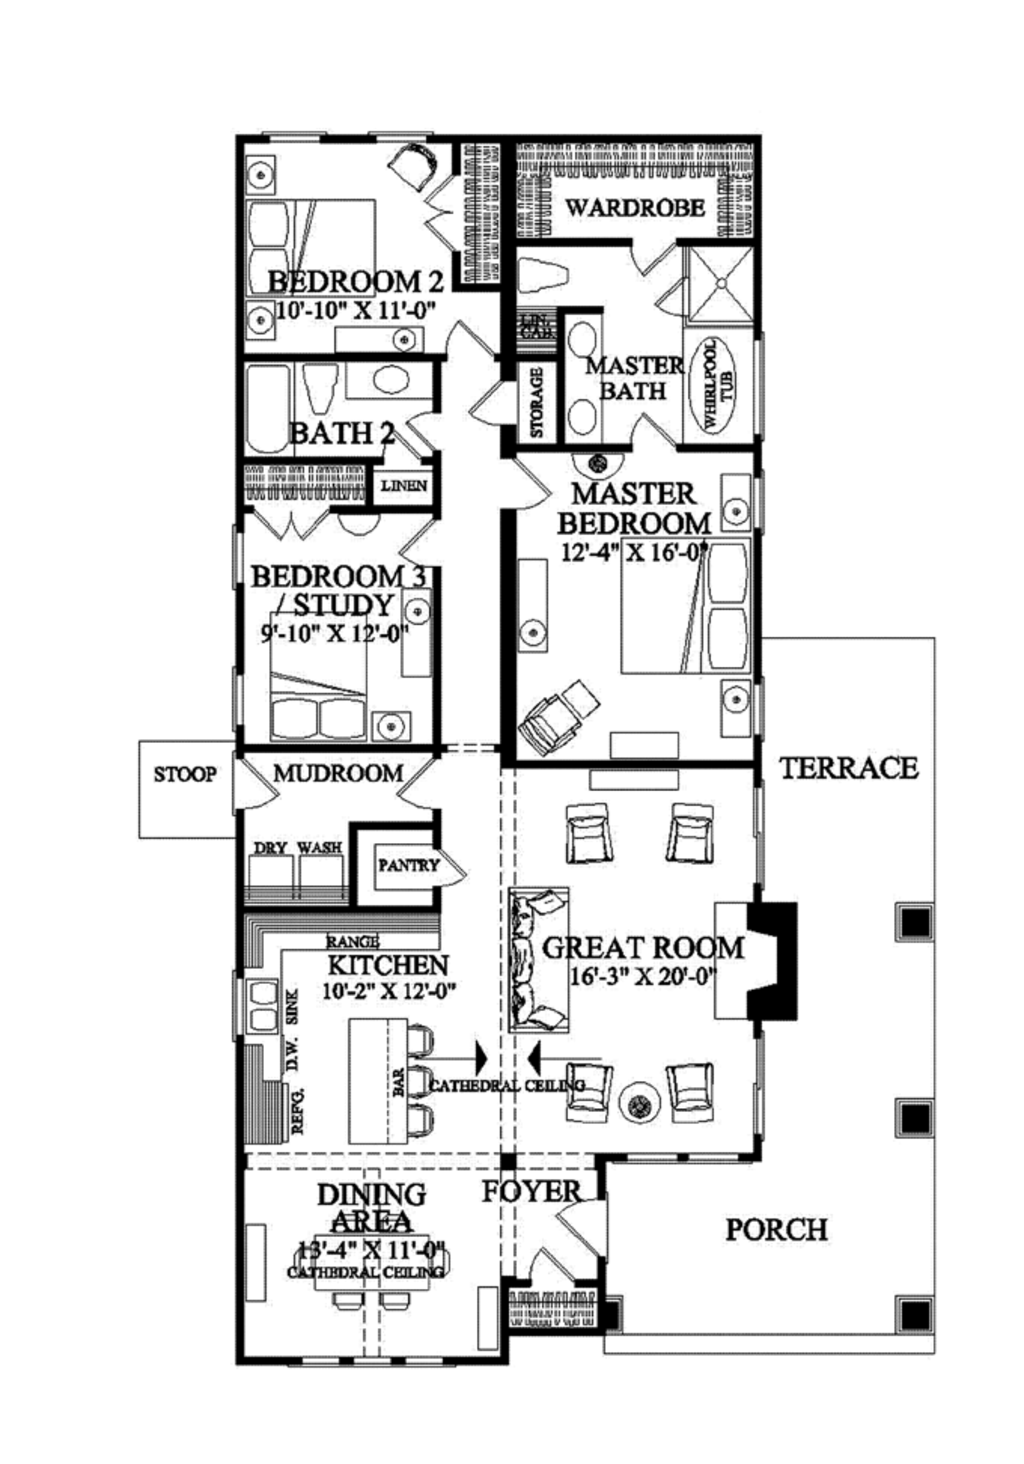 Craftsman Style House Plan 3 Beds 2 Baths 1628 Sq Ft Plan 137 359 Dreamhomesource Com